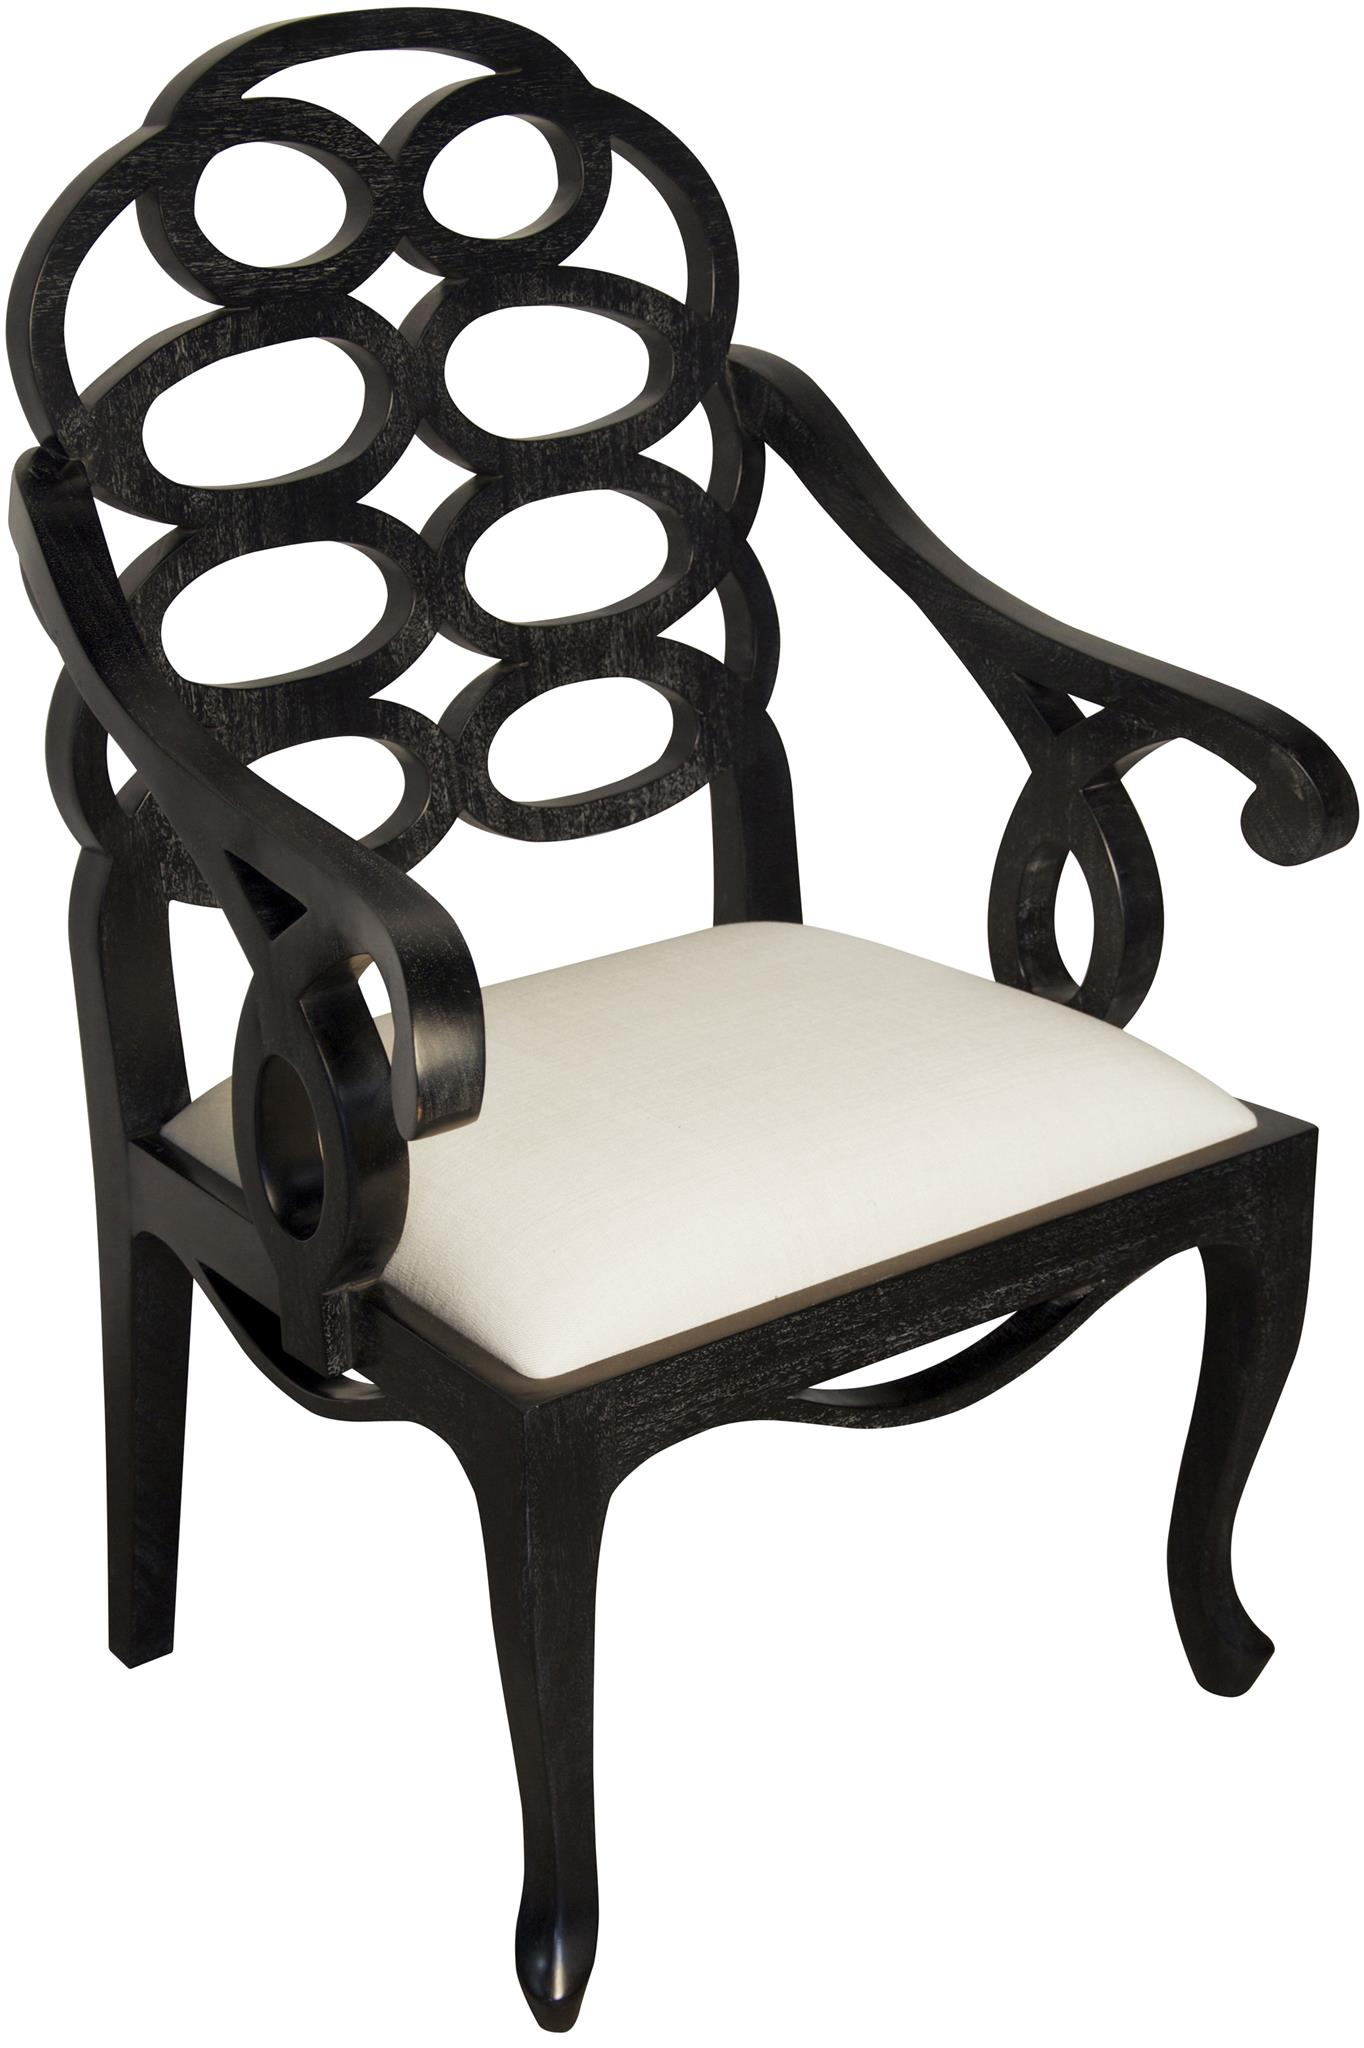 noir dining chairs office chair casters for carpet